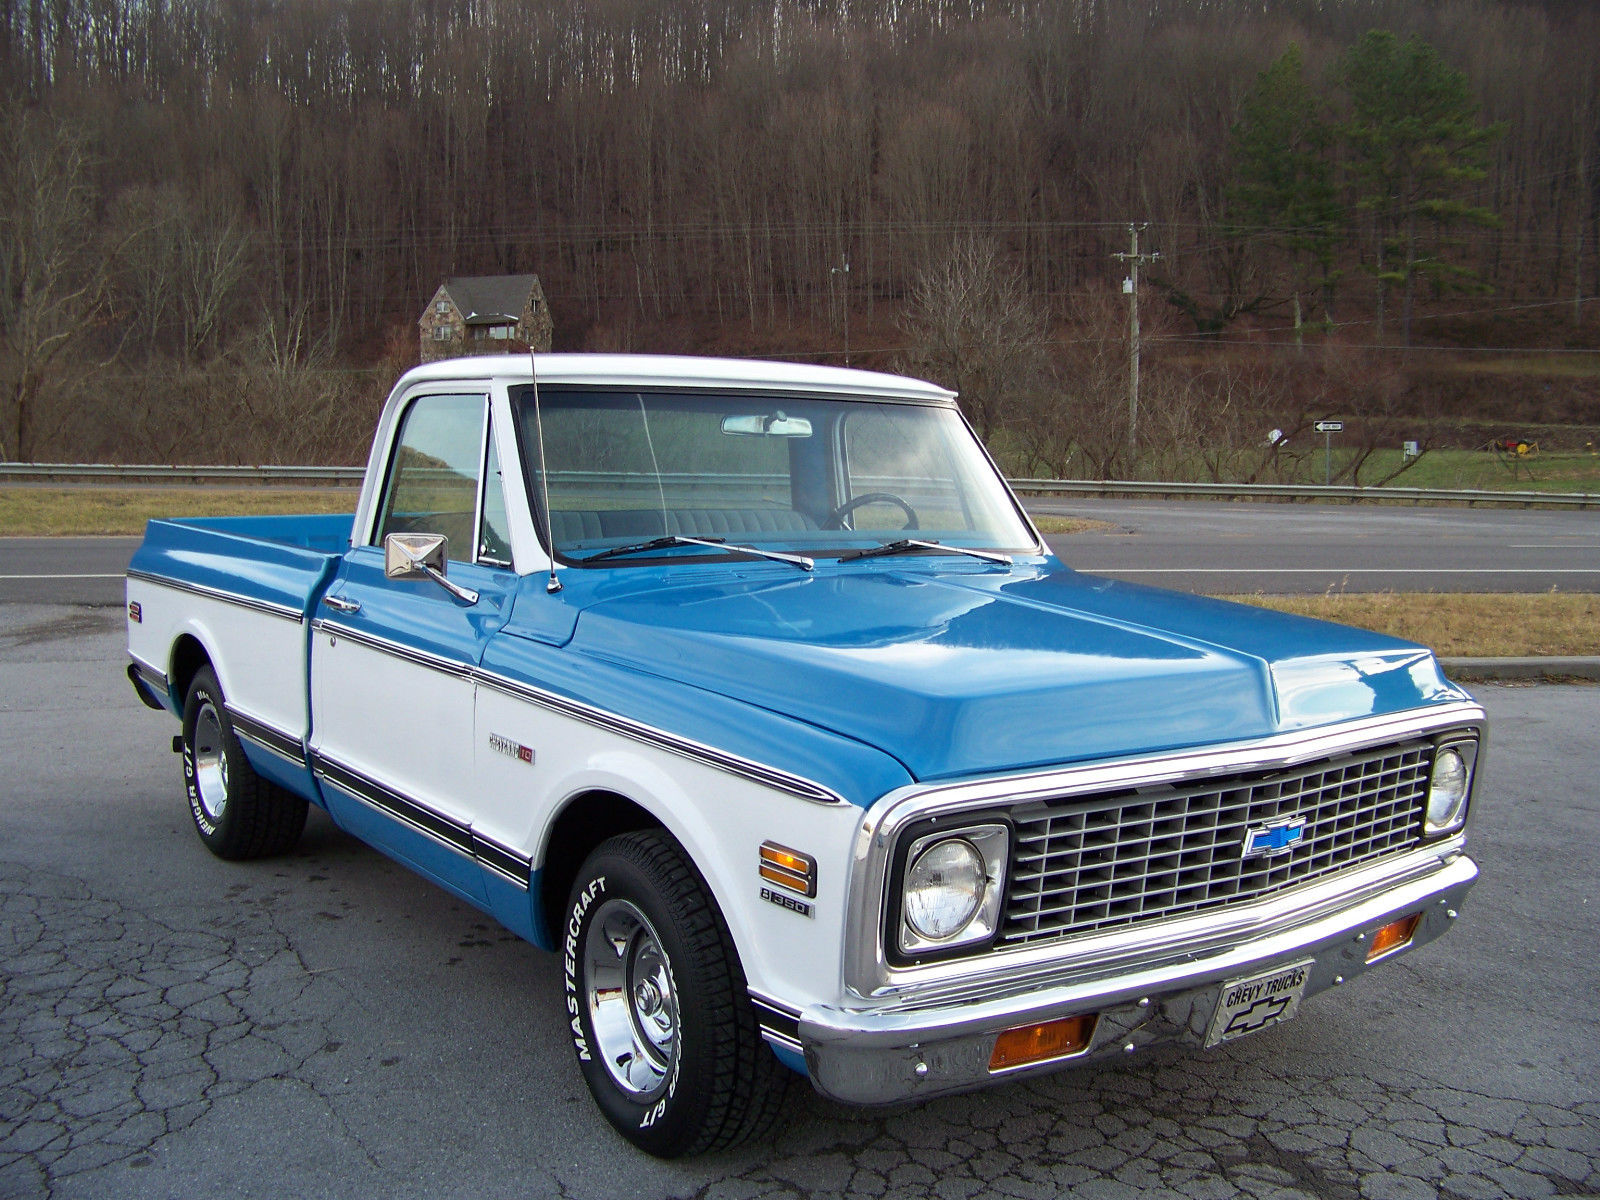 72 chevrolet c10 short bed 350 automatic very nice. Black Bedroom Furniture Sets. Home Design Ideas